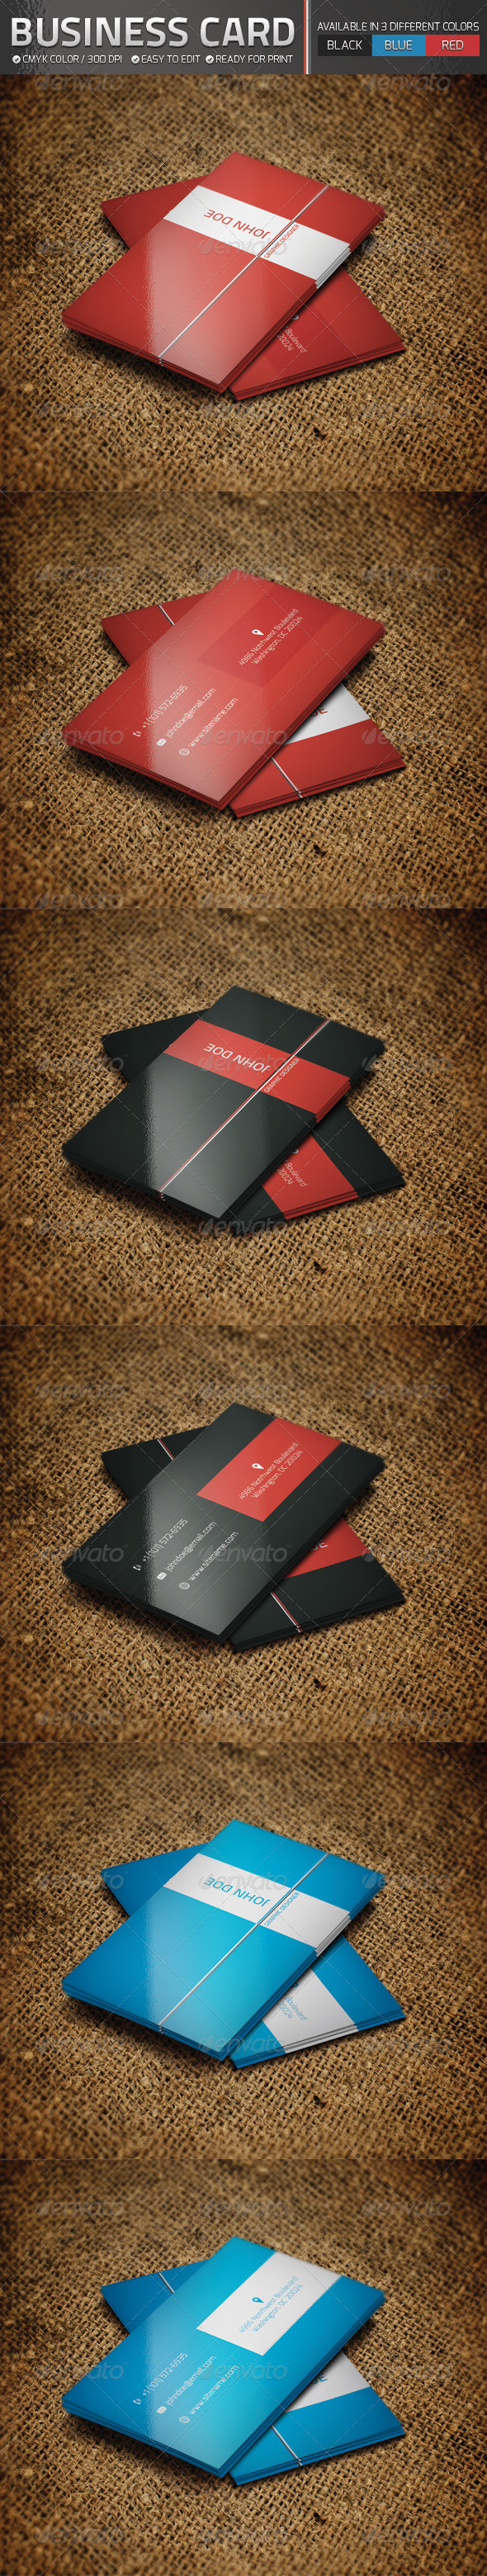 Business Card Set - Corporate Business Cards